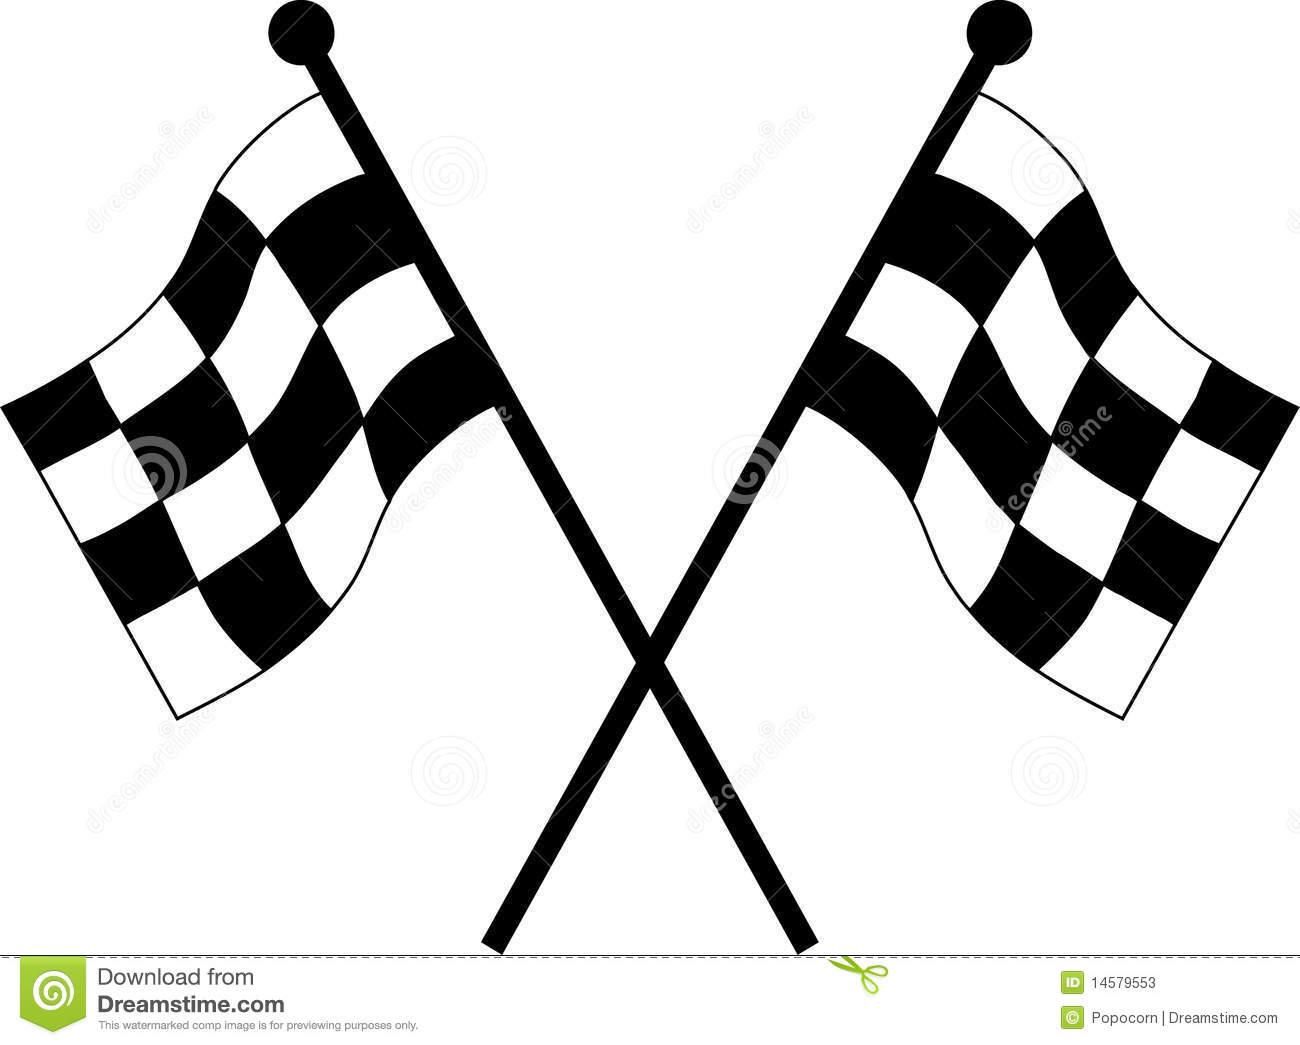 Car racing flags in checkered black and white color.